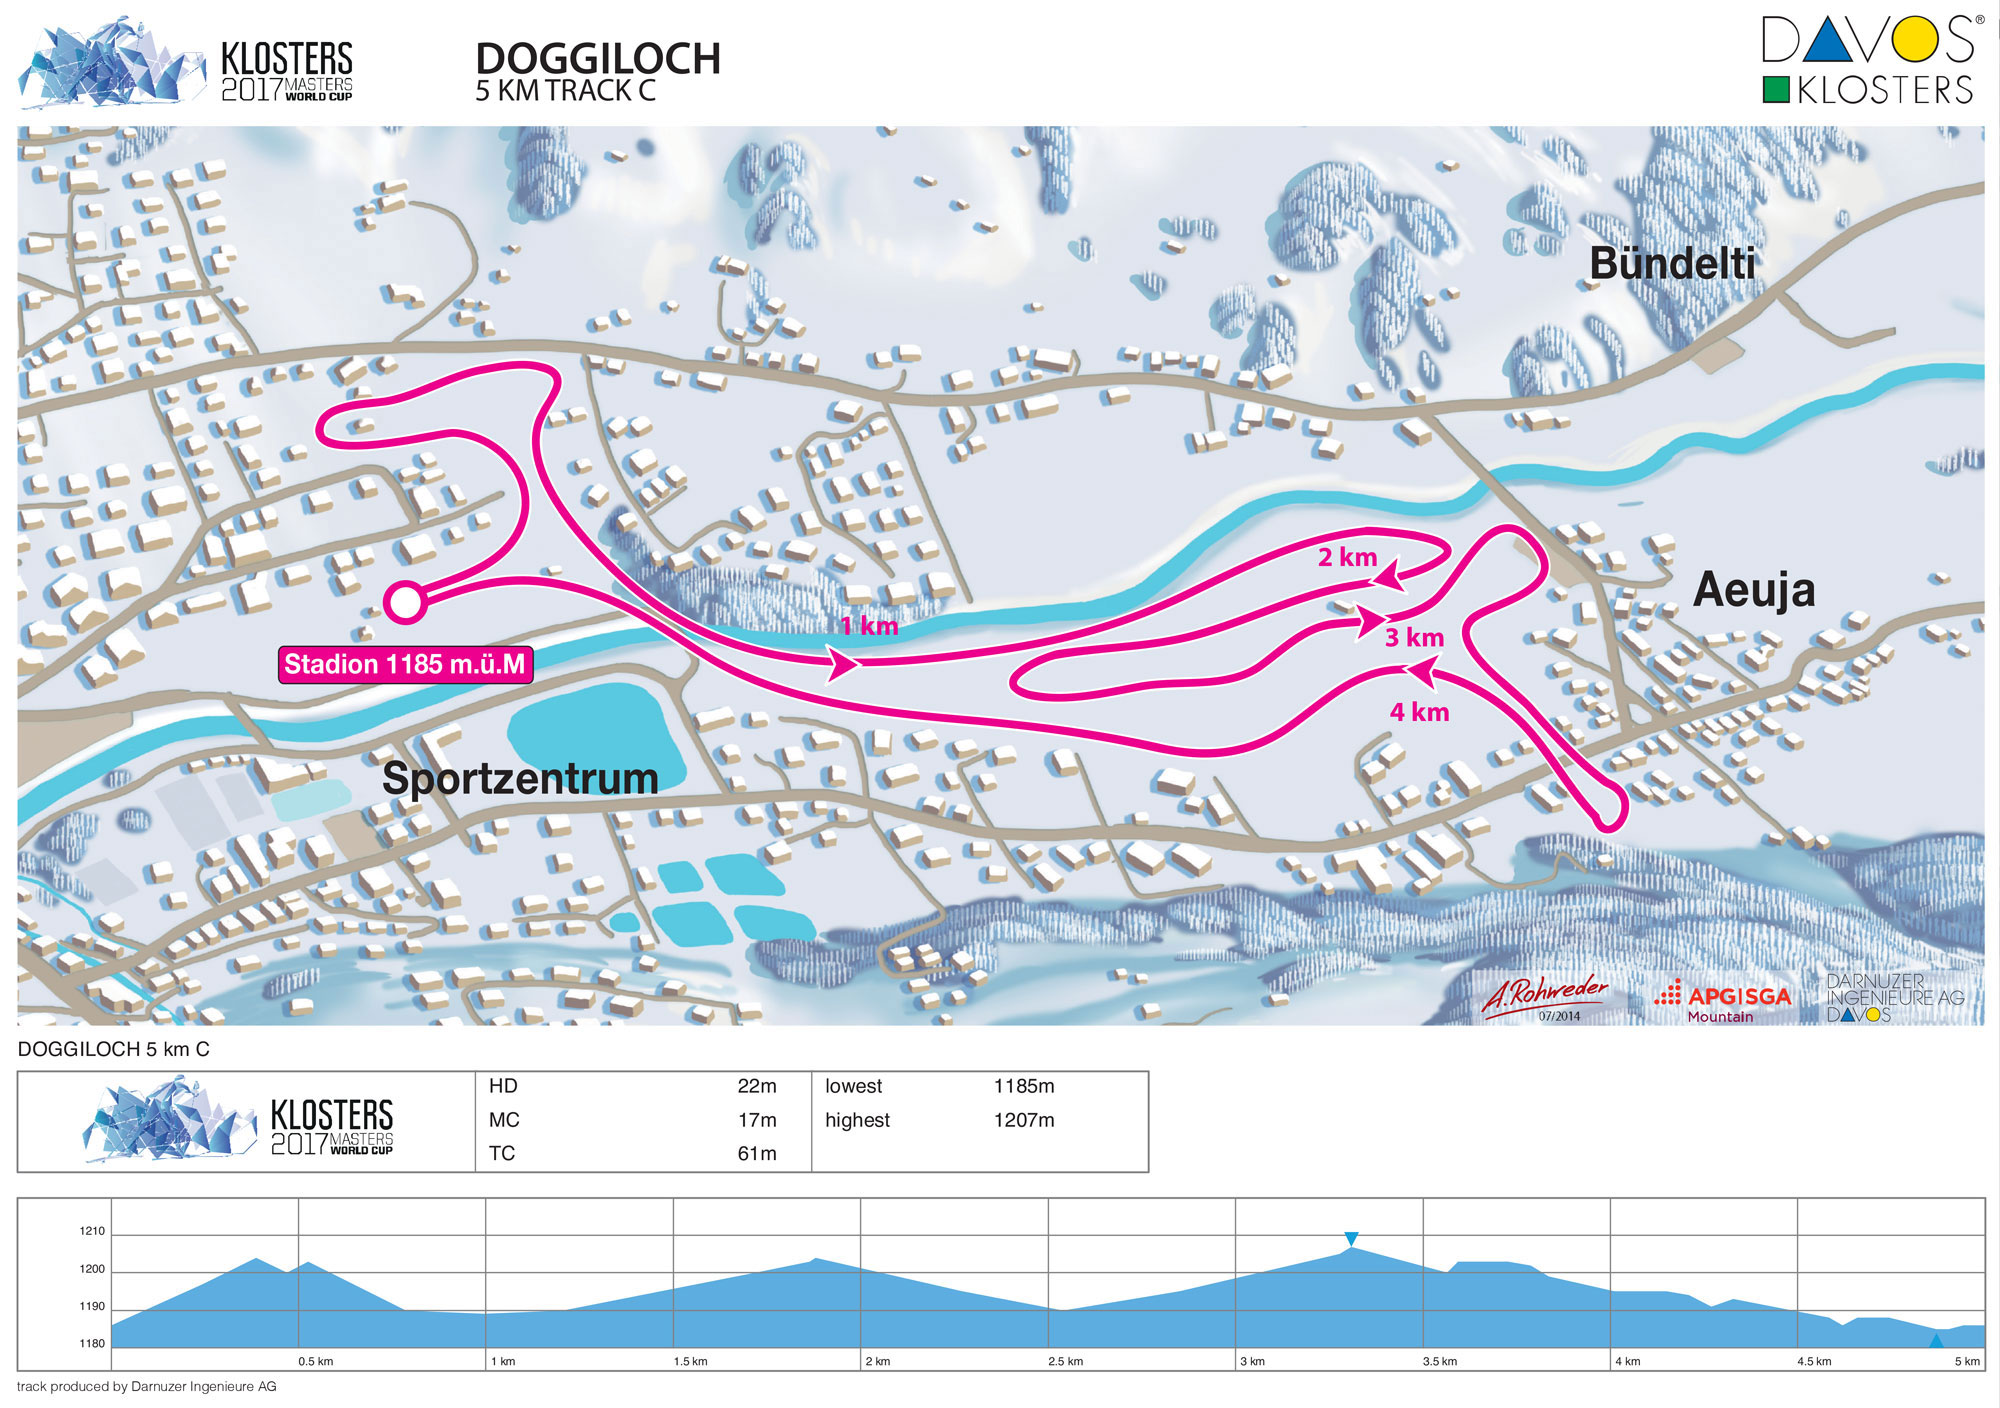 Davos Klosters Doggiloch Cross Country Skiing Trail Map